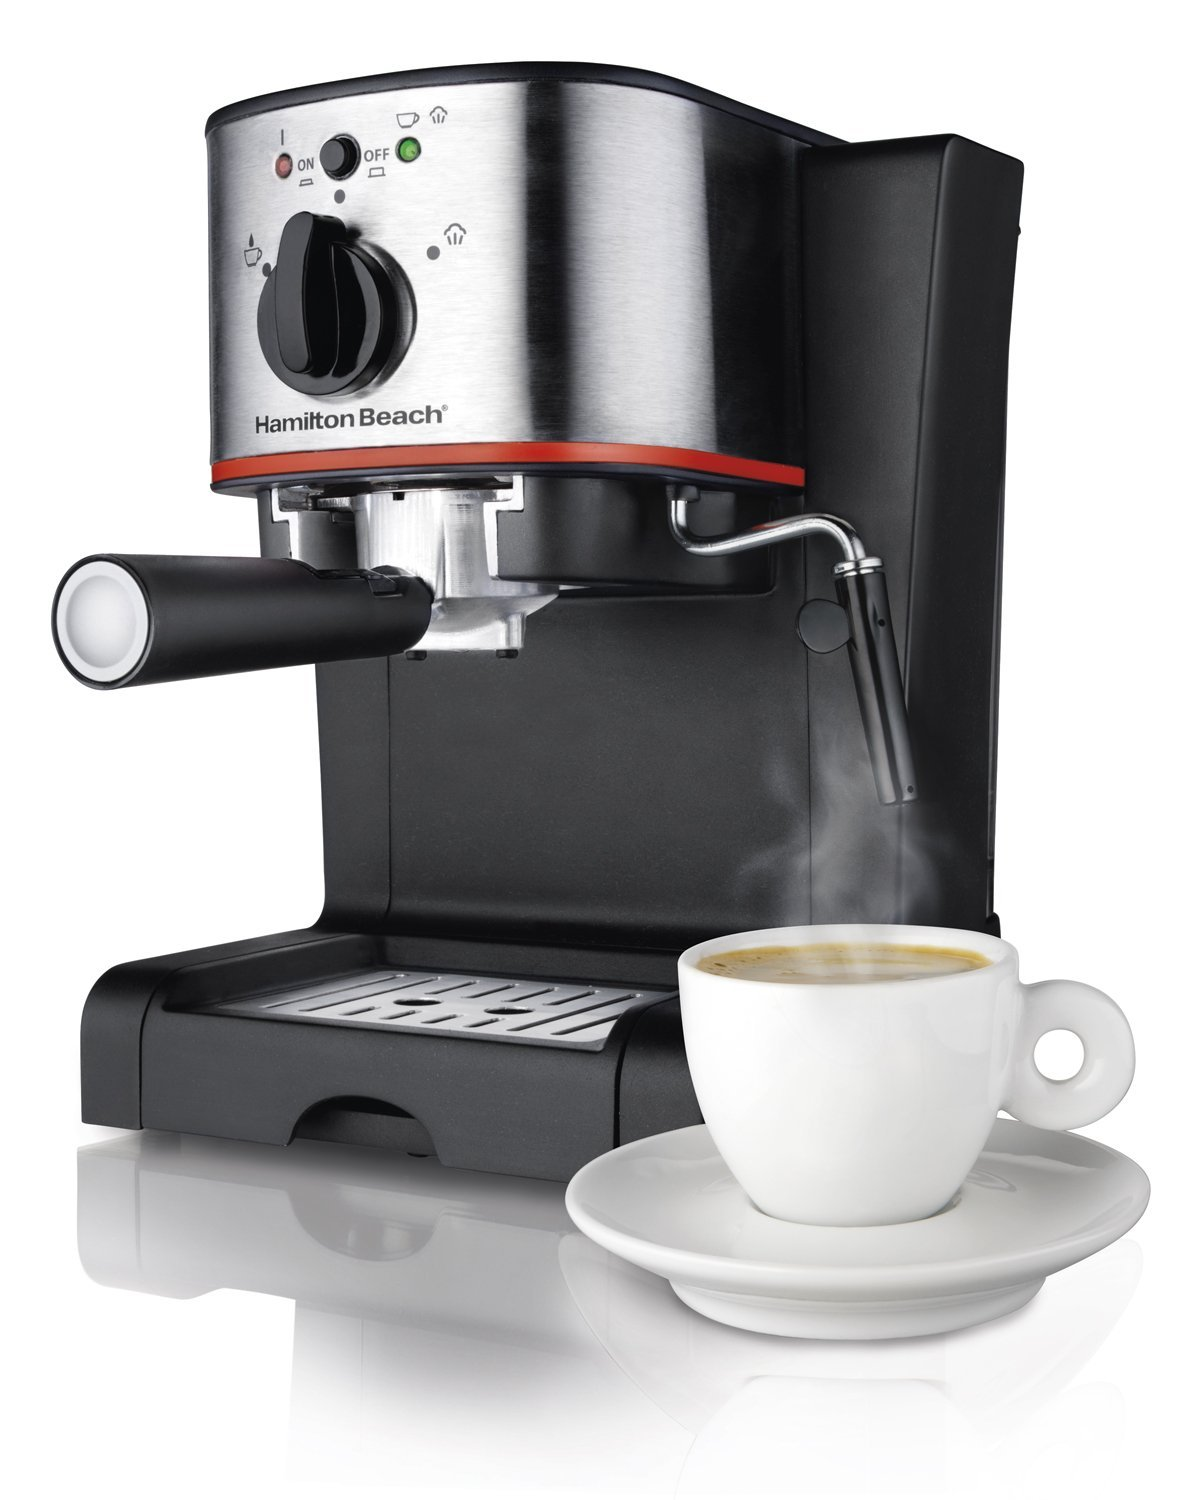 NEW! Hamilton Beach Cafe Espresso Coffee Maker Counter Top Steam Machine 15 Bar | eBay